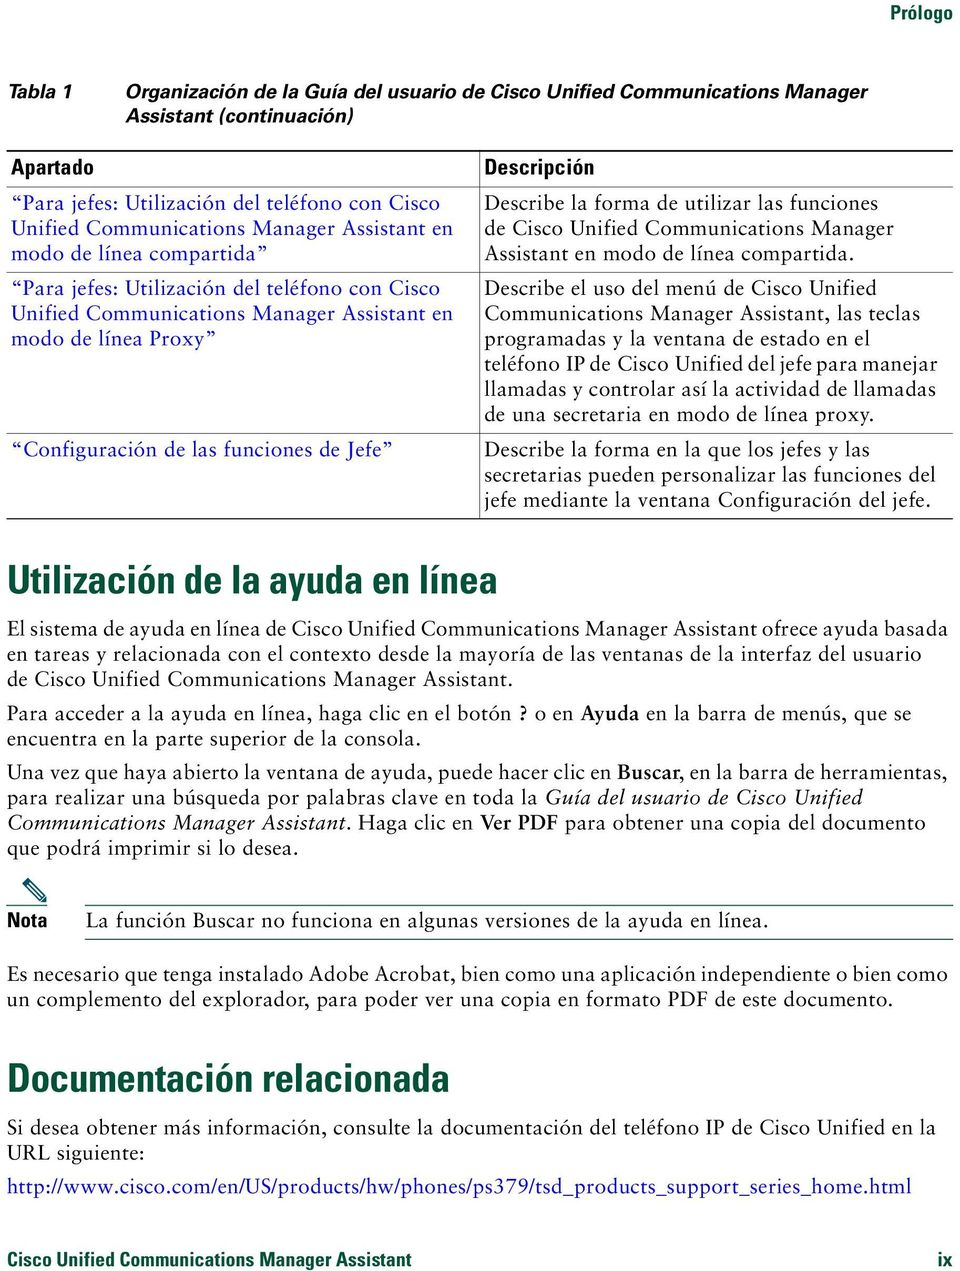 Descripción Describe la forma de utilizar las funciones de Cisco Unified Communications Manager Assistant en modo de línea compartida.